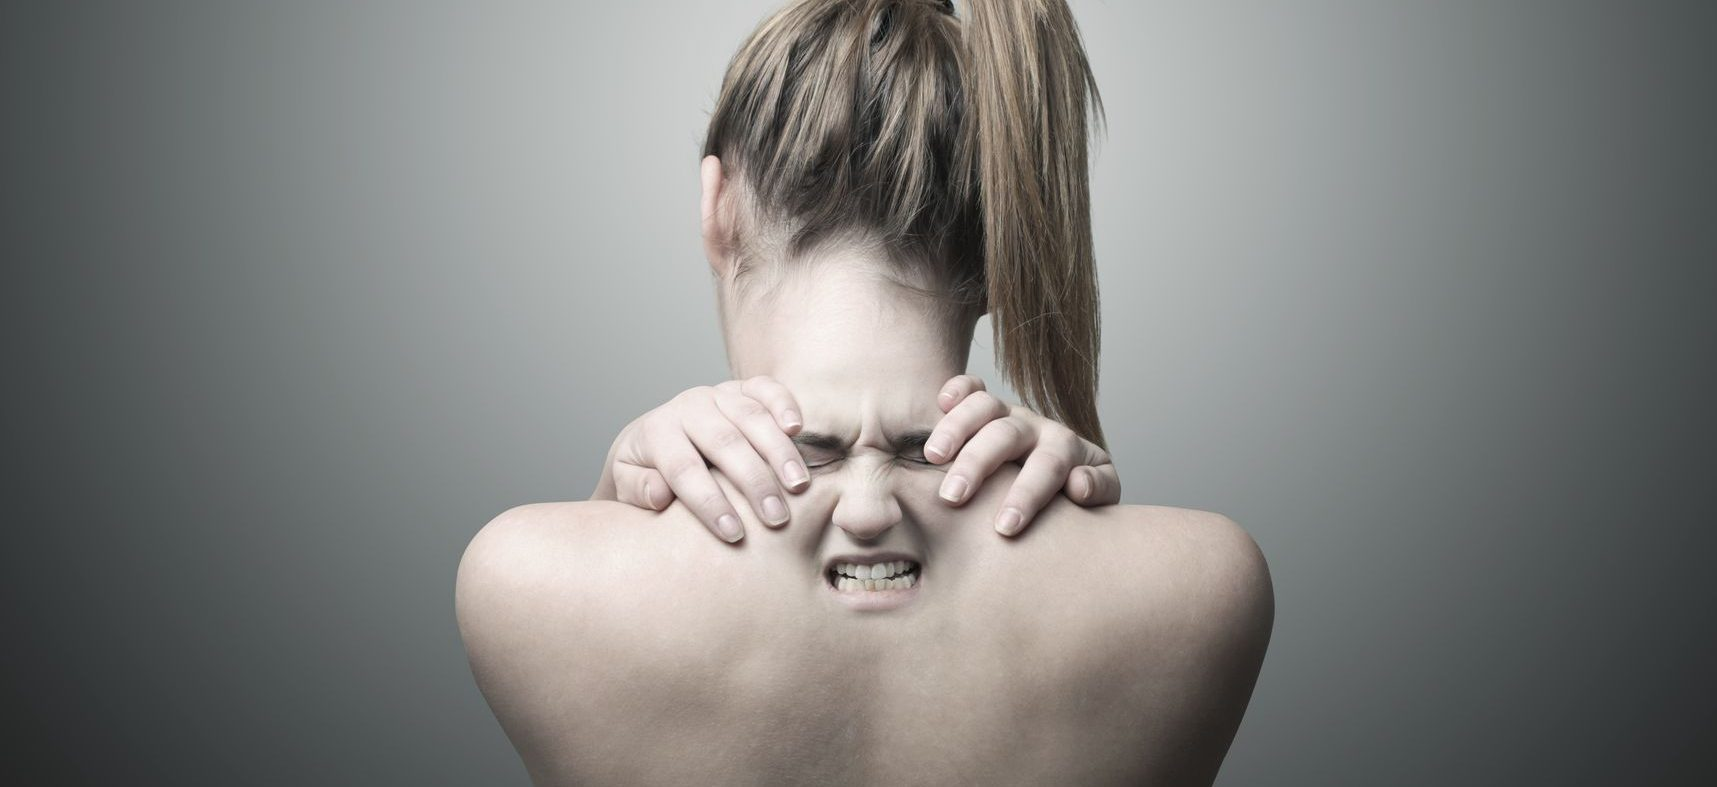 3 Painful Warning Signs You Might Have A Herniated Disc in Your Neck